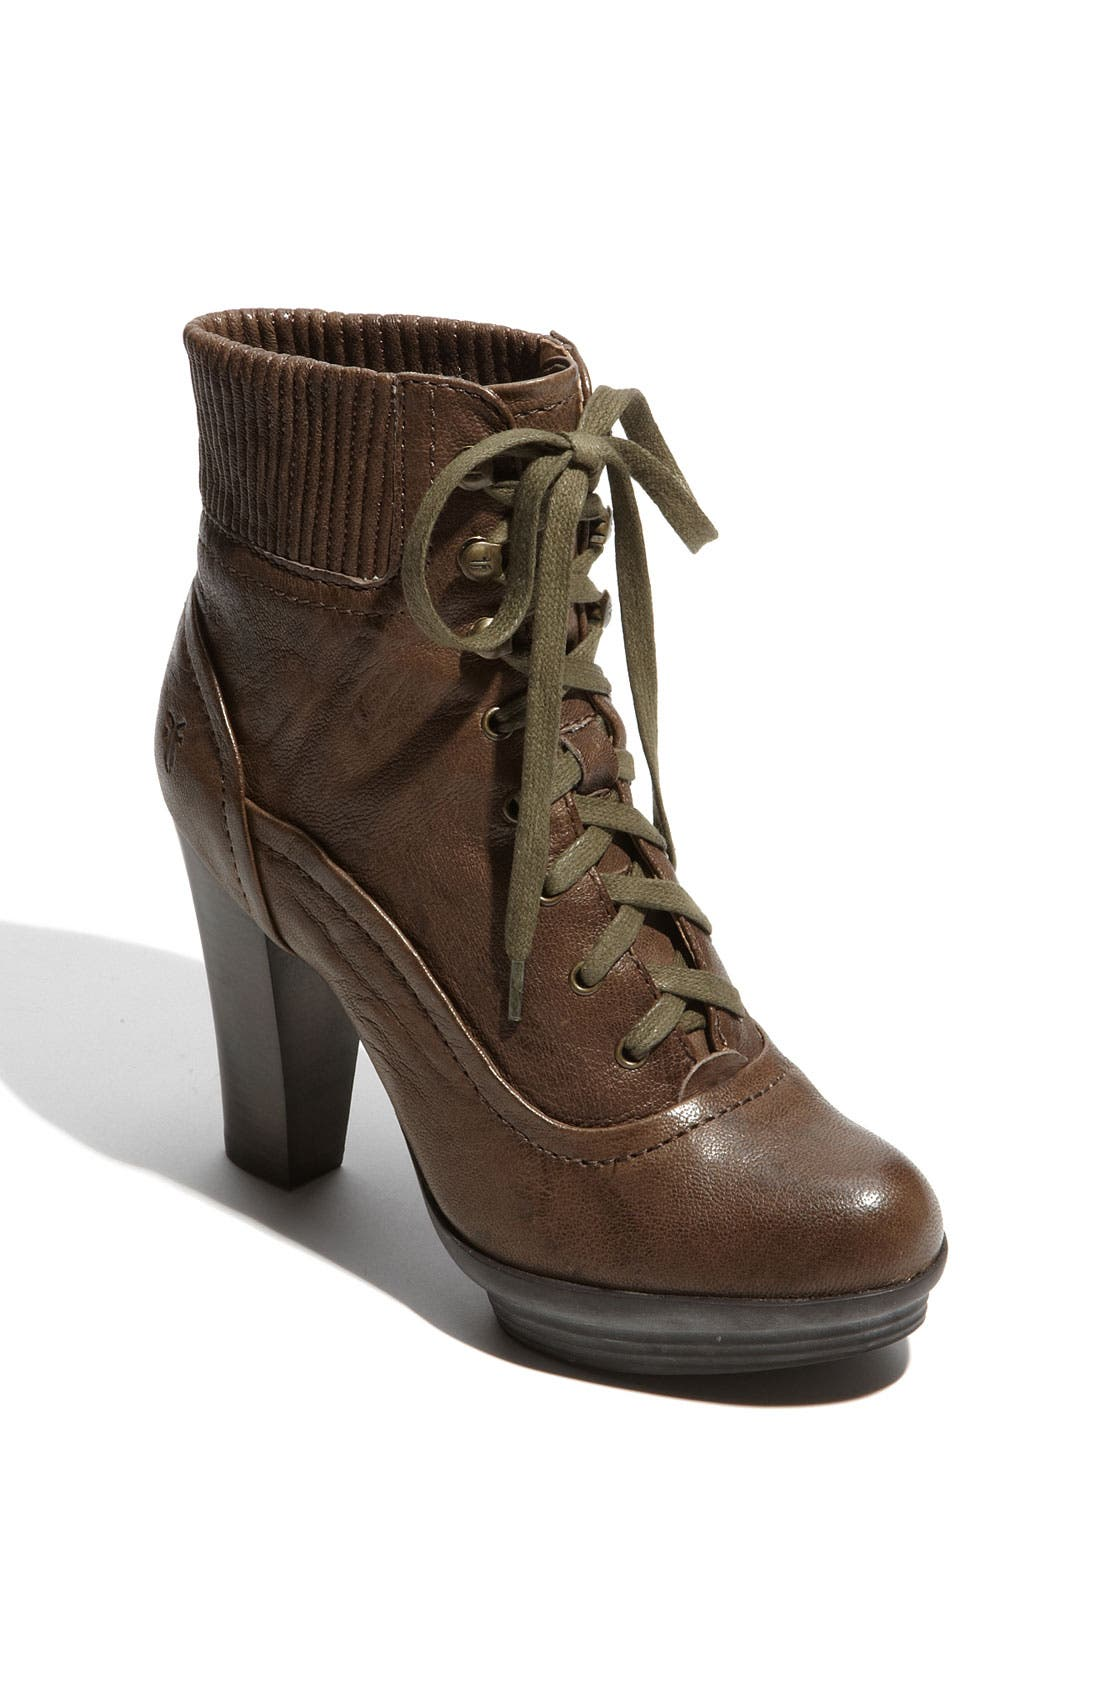 Main Image - Frye 'Mimi' Lace-Up Bootie